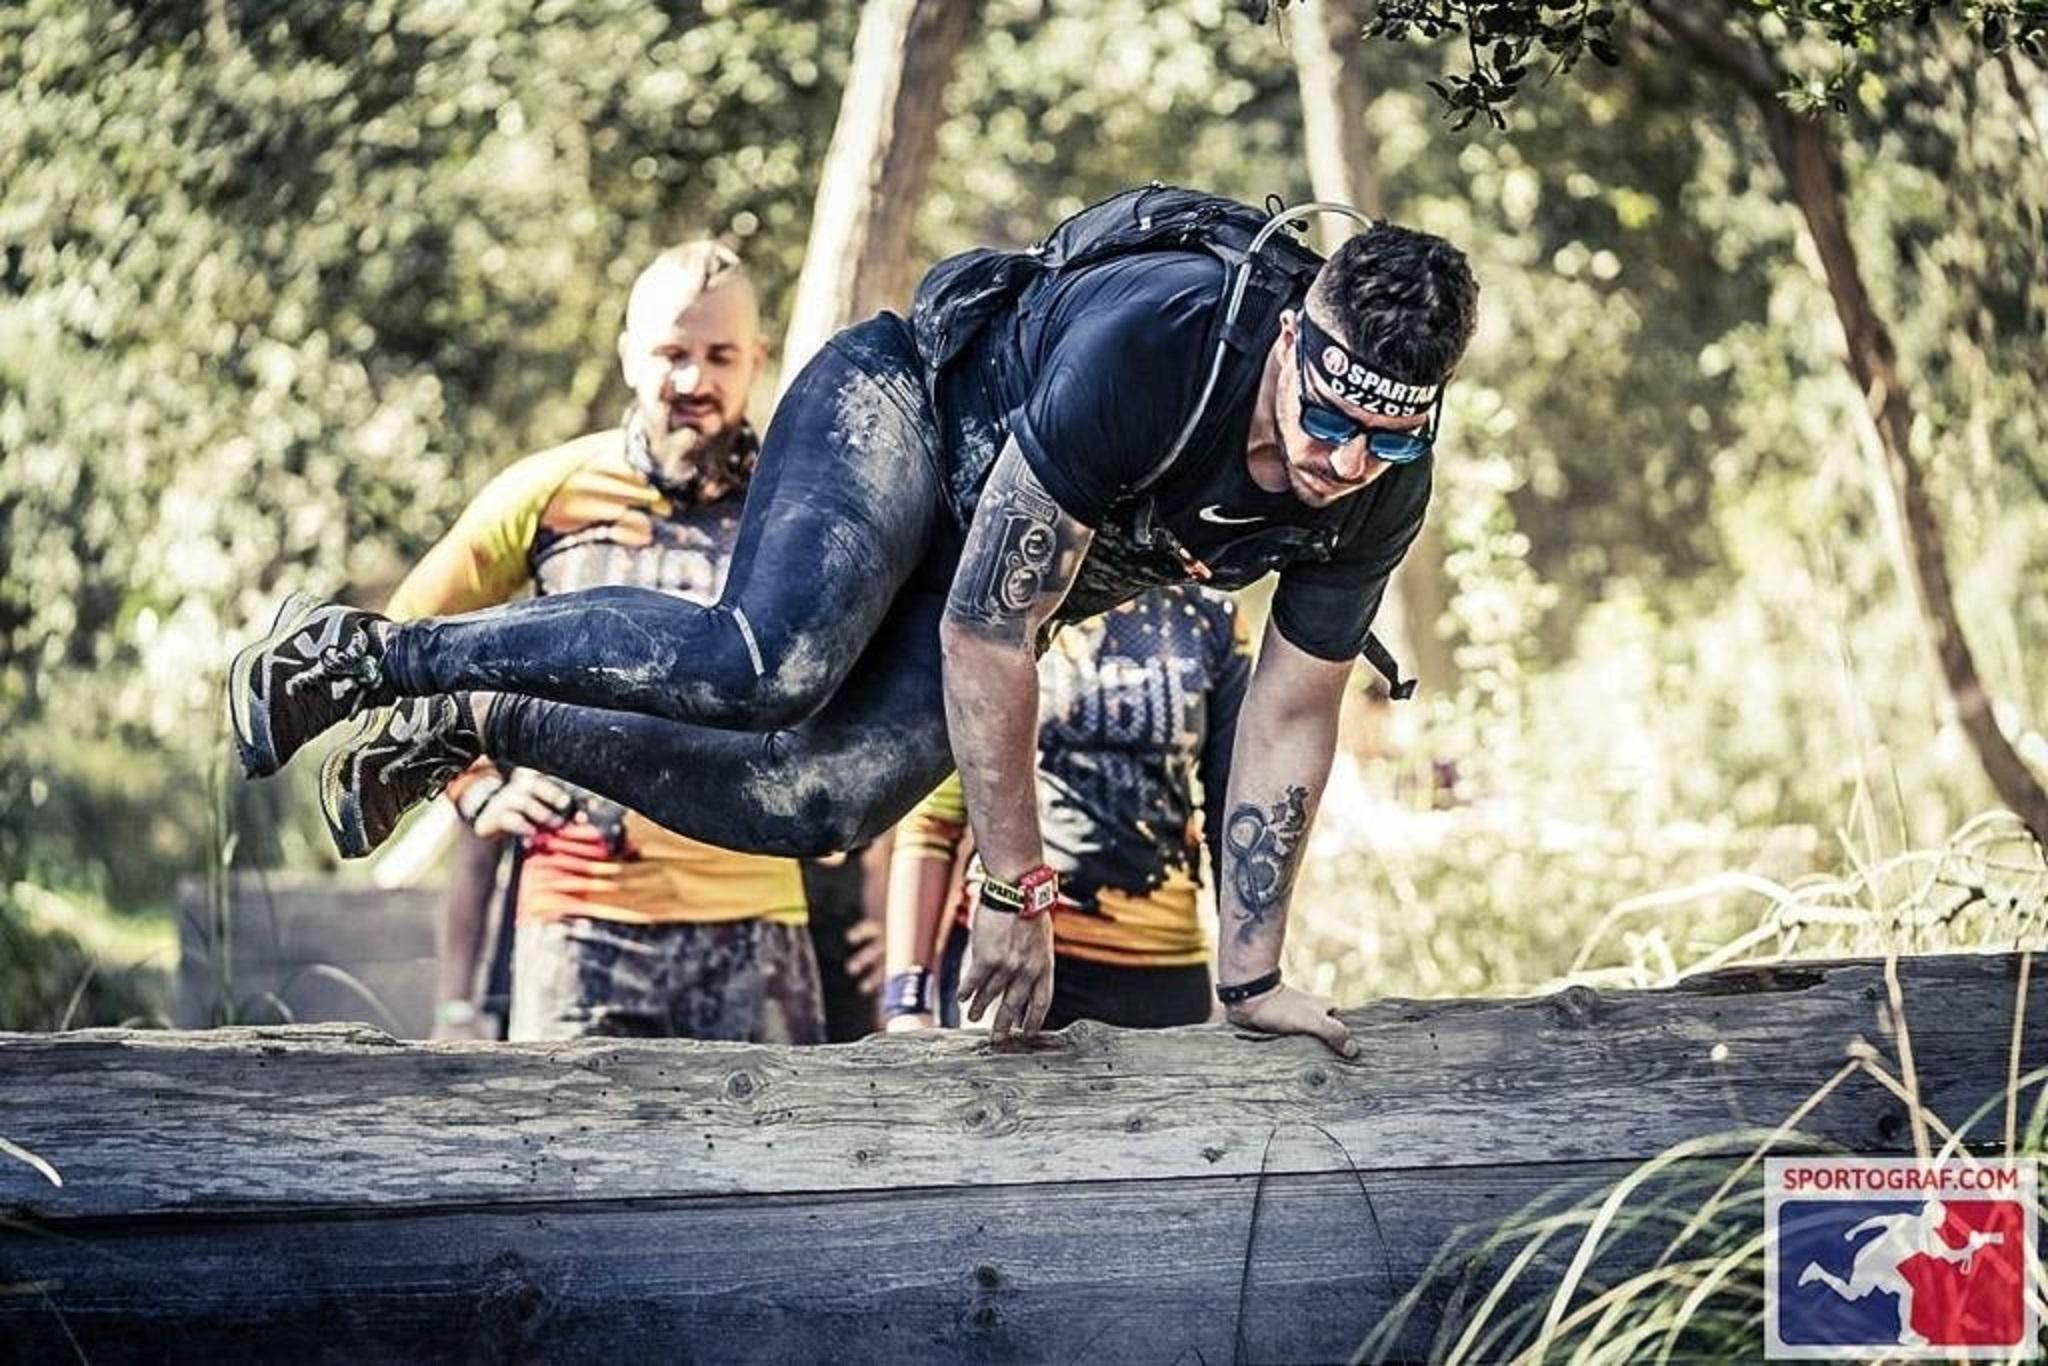 Competitor in the Spartan Race